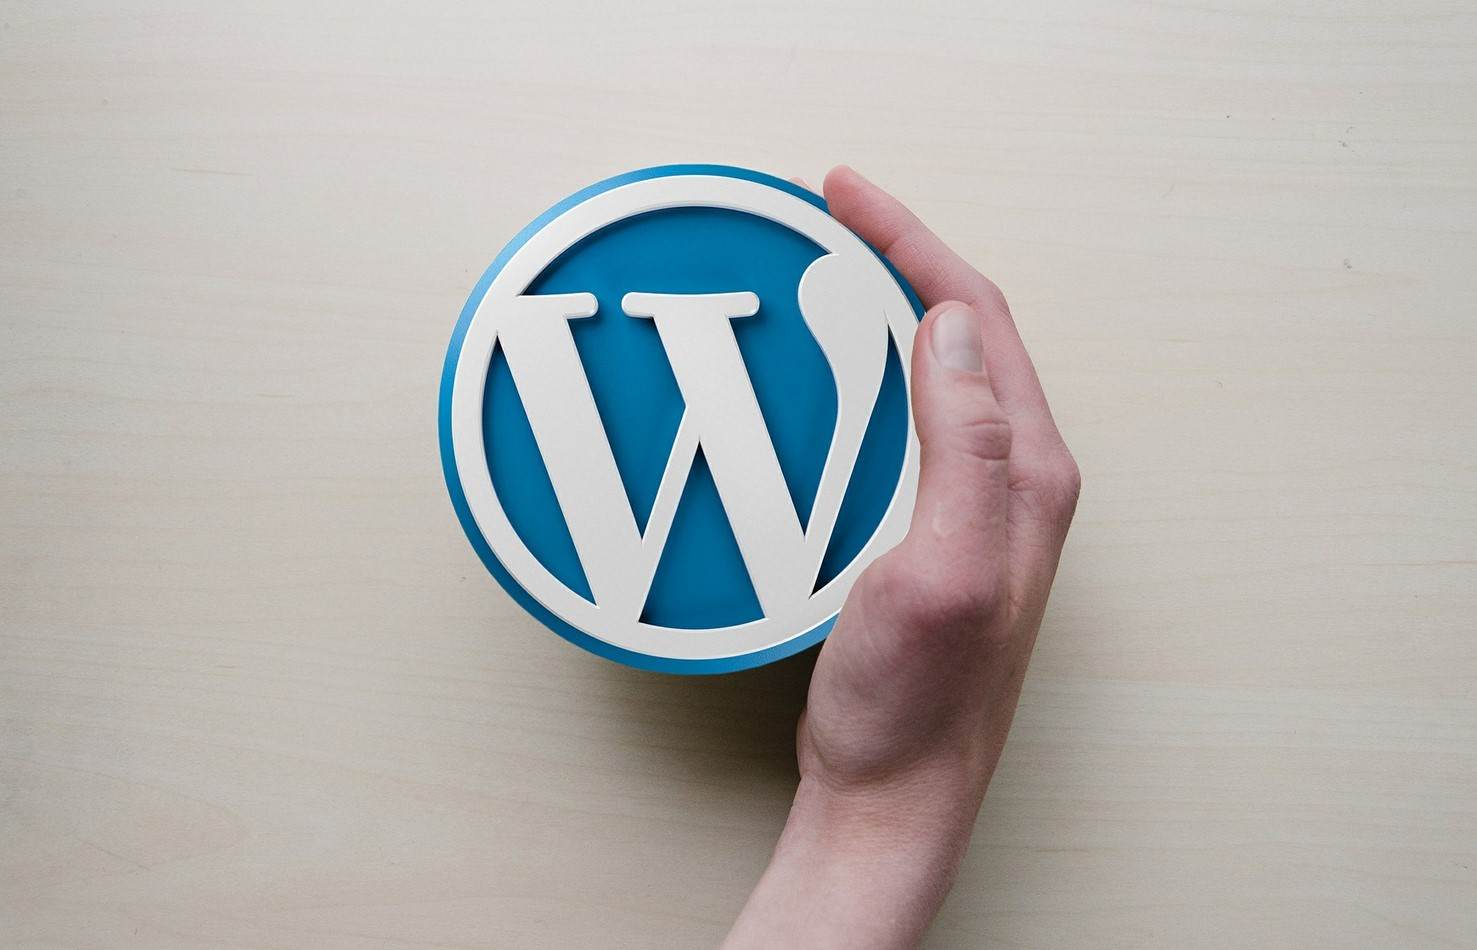 Comment Embaucher Un Développeur Wordpress En 5 étapes Faciles